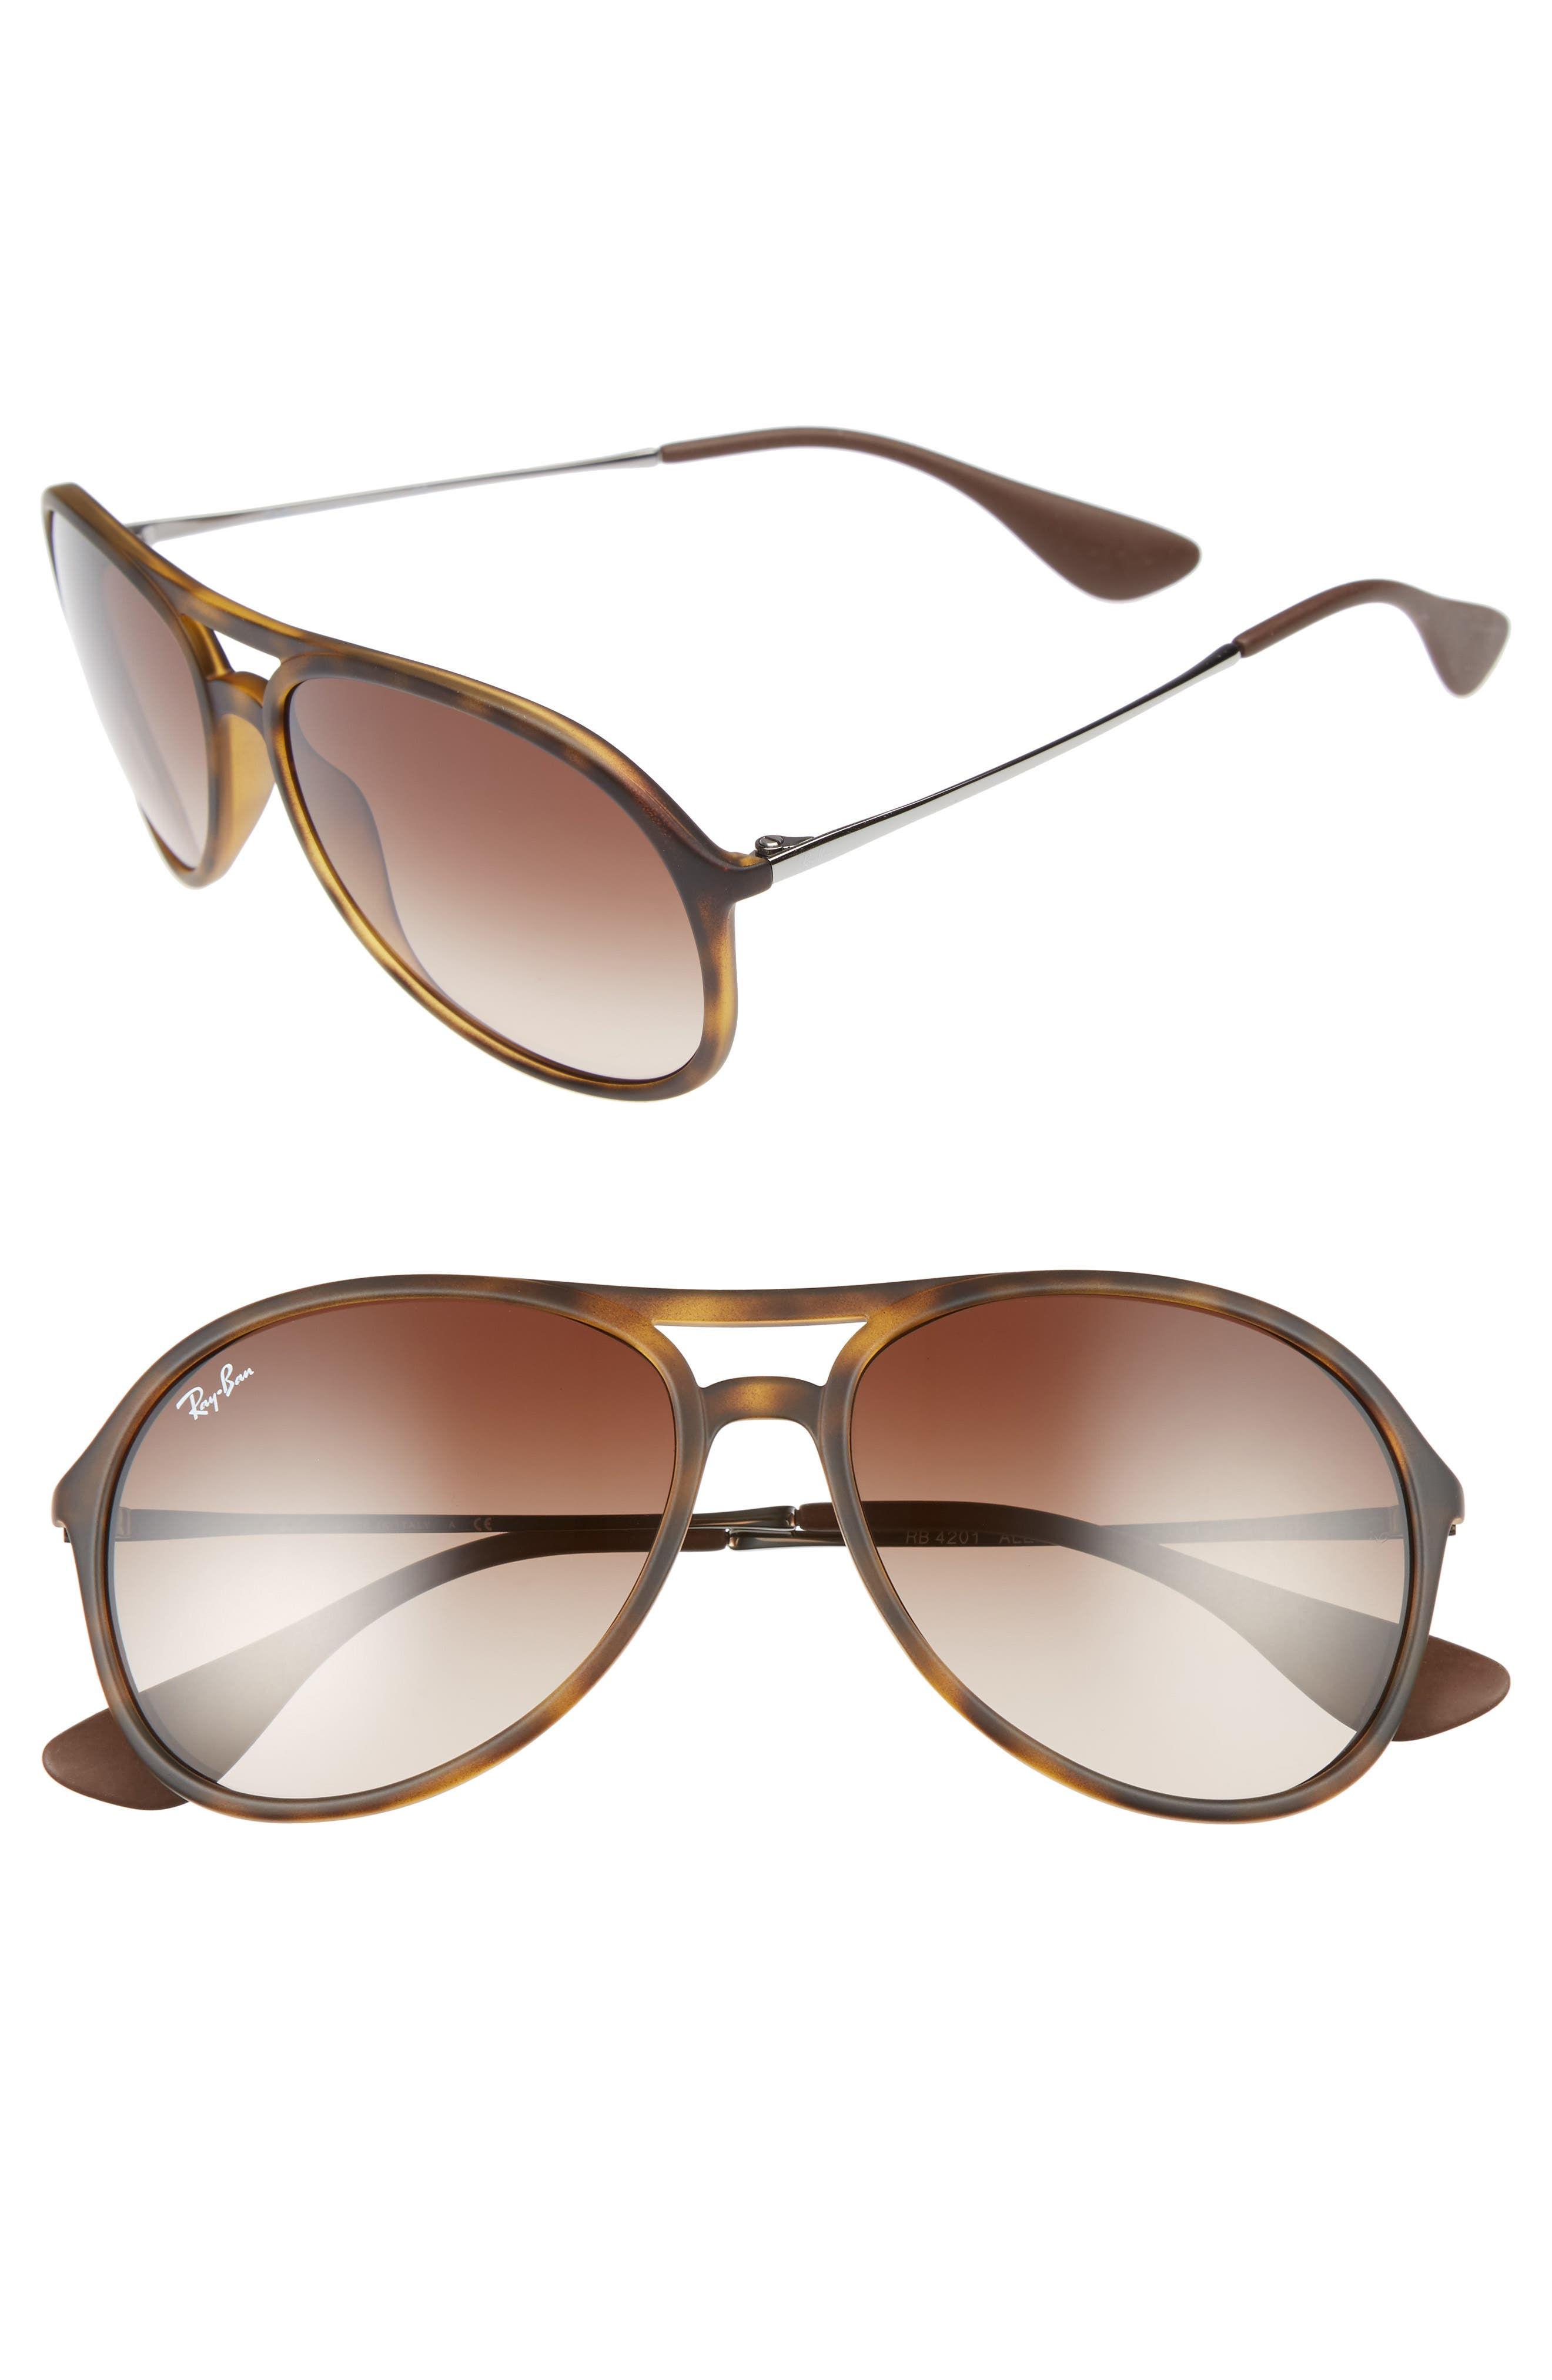 Ray-Ban Youngster 5m Aviator Sunglasses -